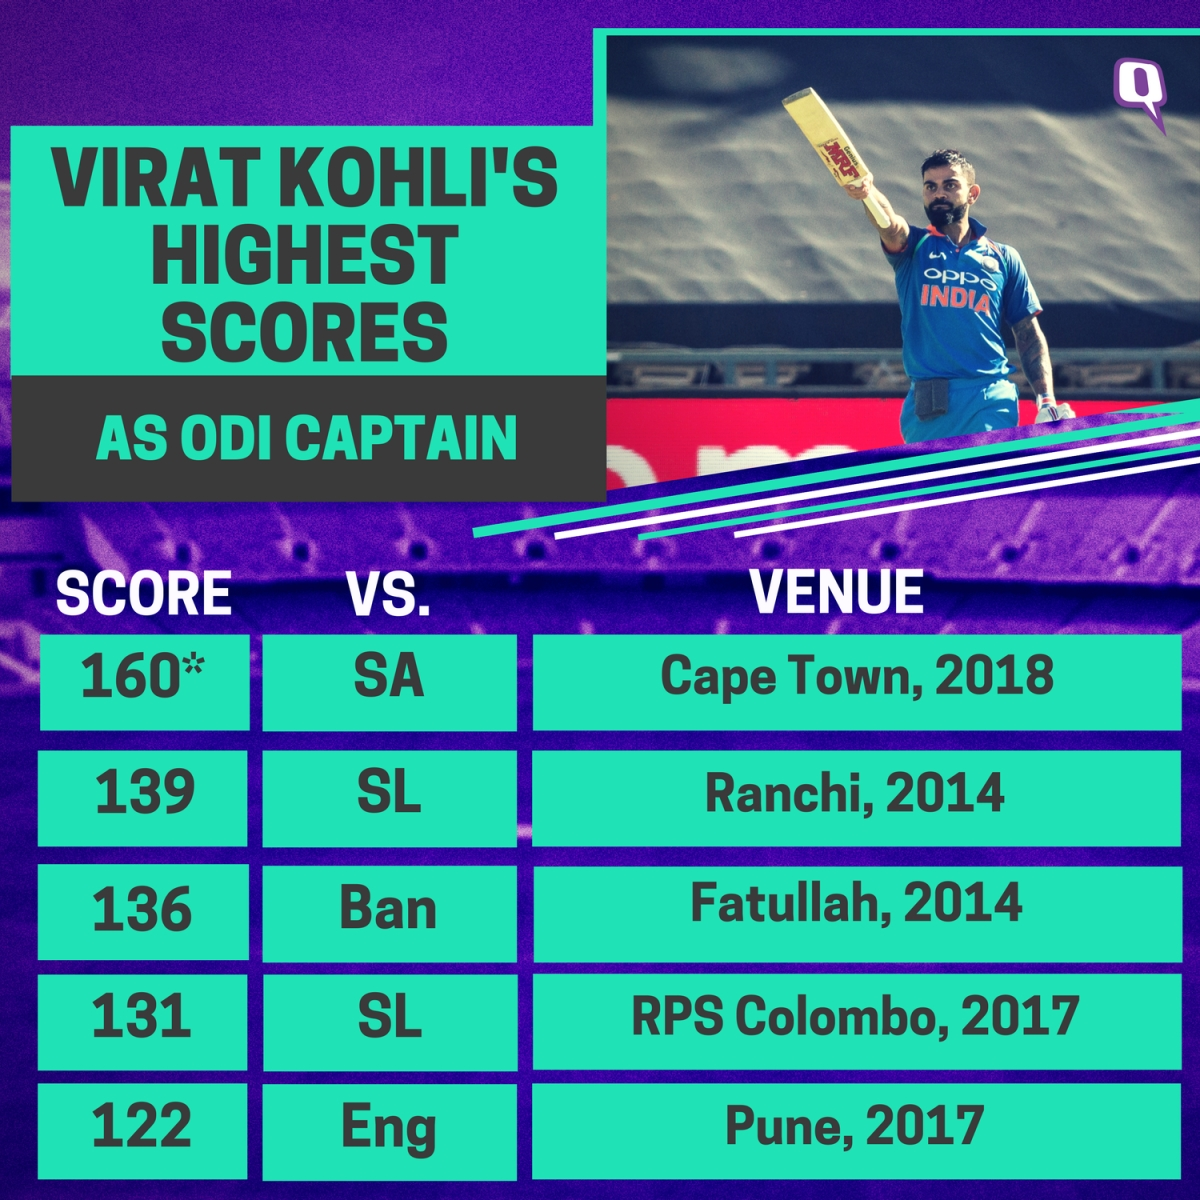 Records Set by Virat Kohli in His Unbeaten 160 vs South